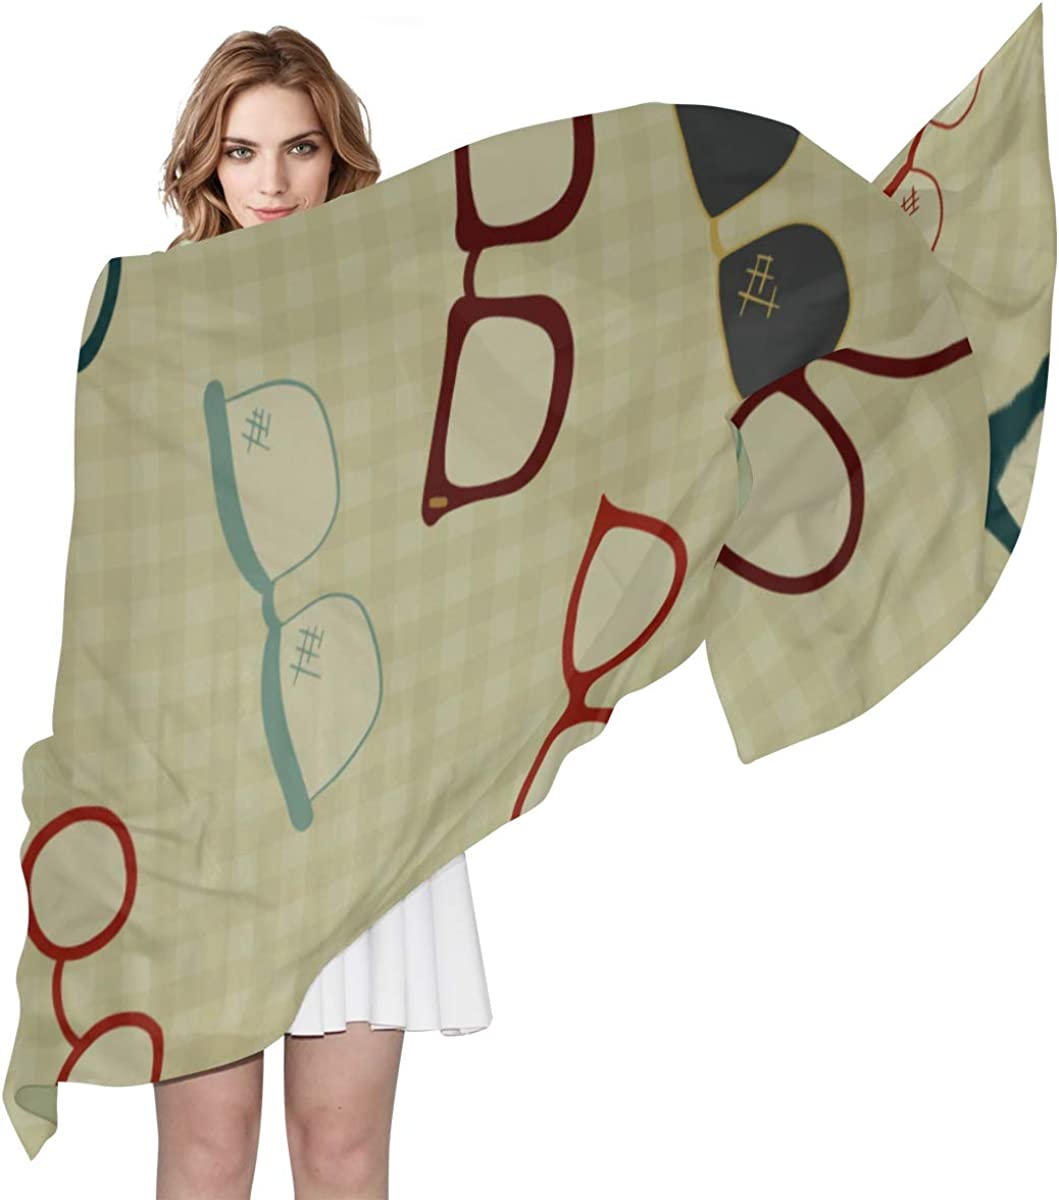 Fashion Scarf For Women Creative Beautiful Match Glasses Lightweight Scarf For Women Neck Scarf Lightweight Print Scarves Scarfs For Boys Wrap Or Shawl